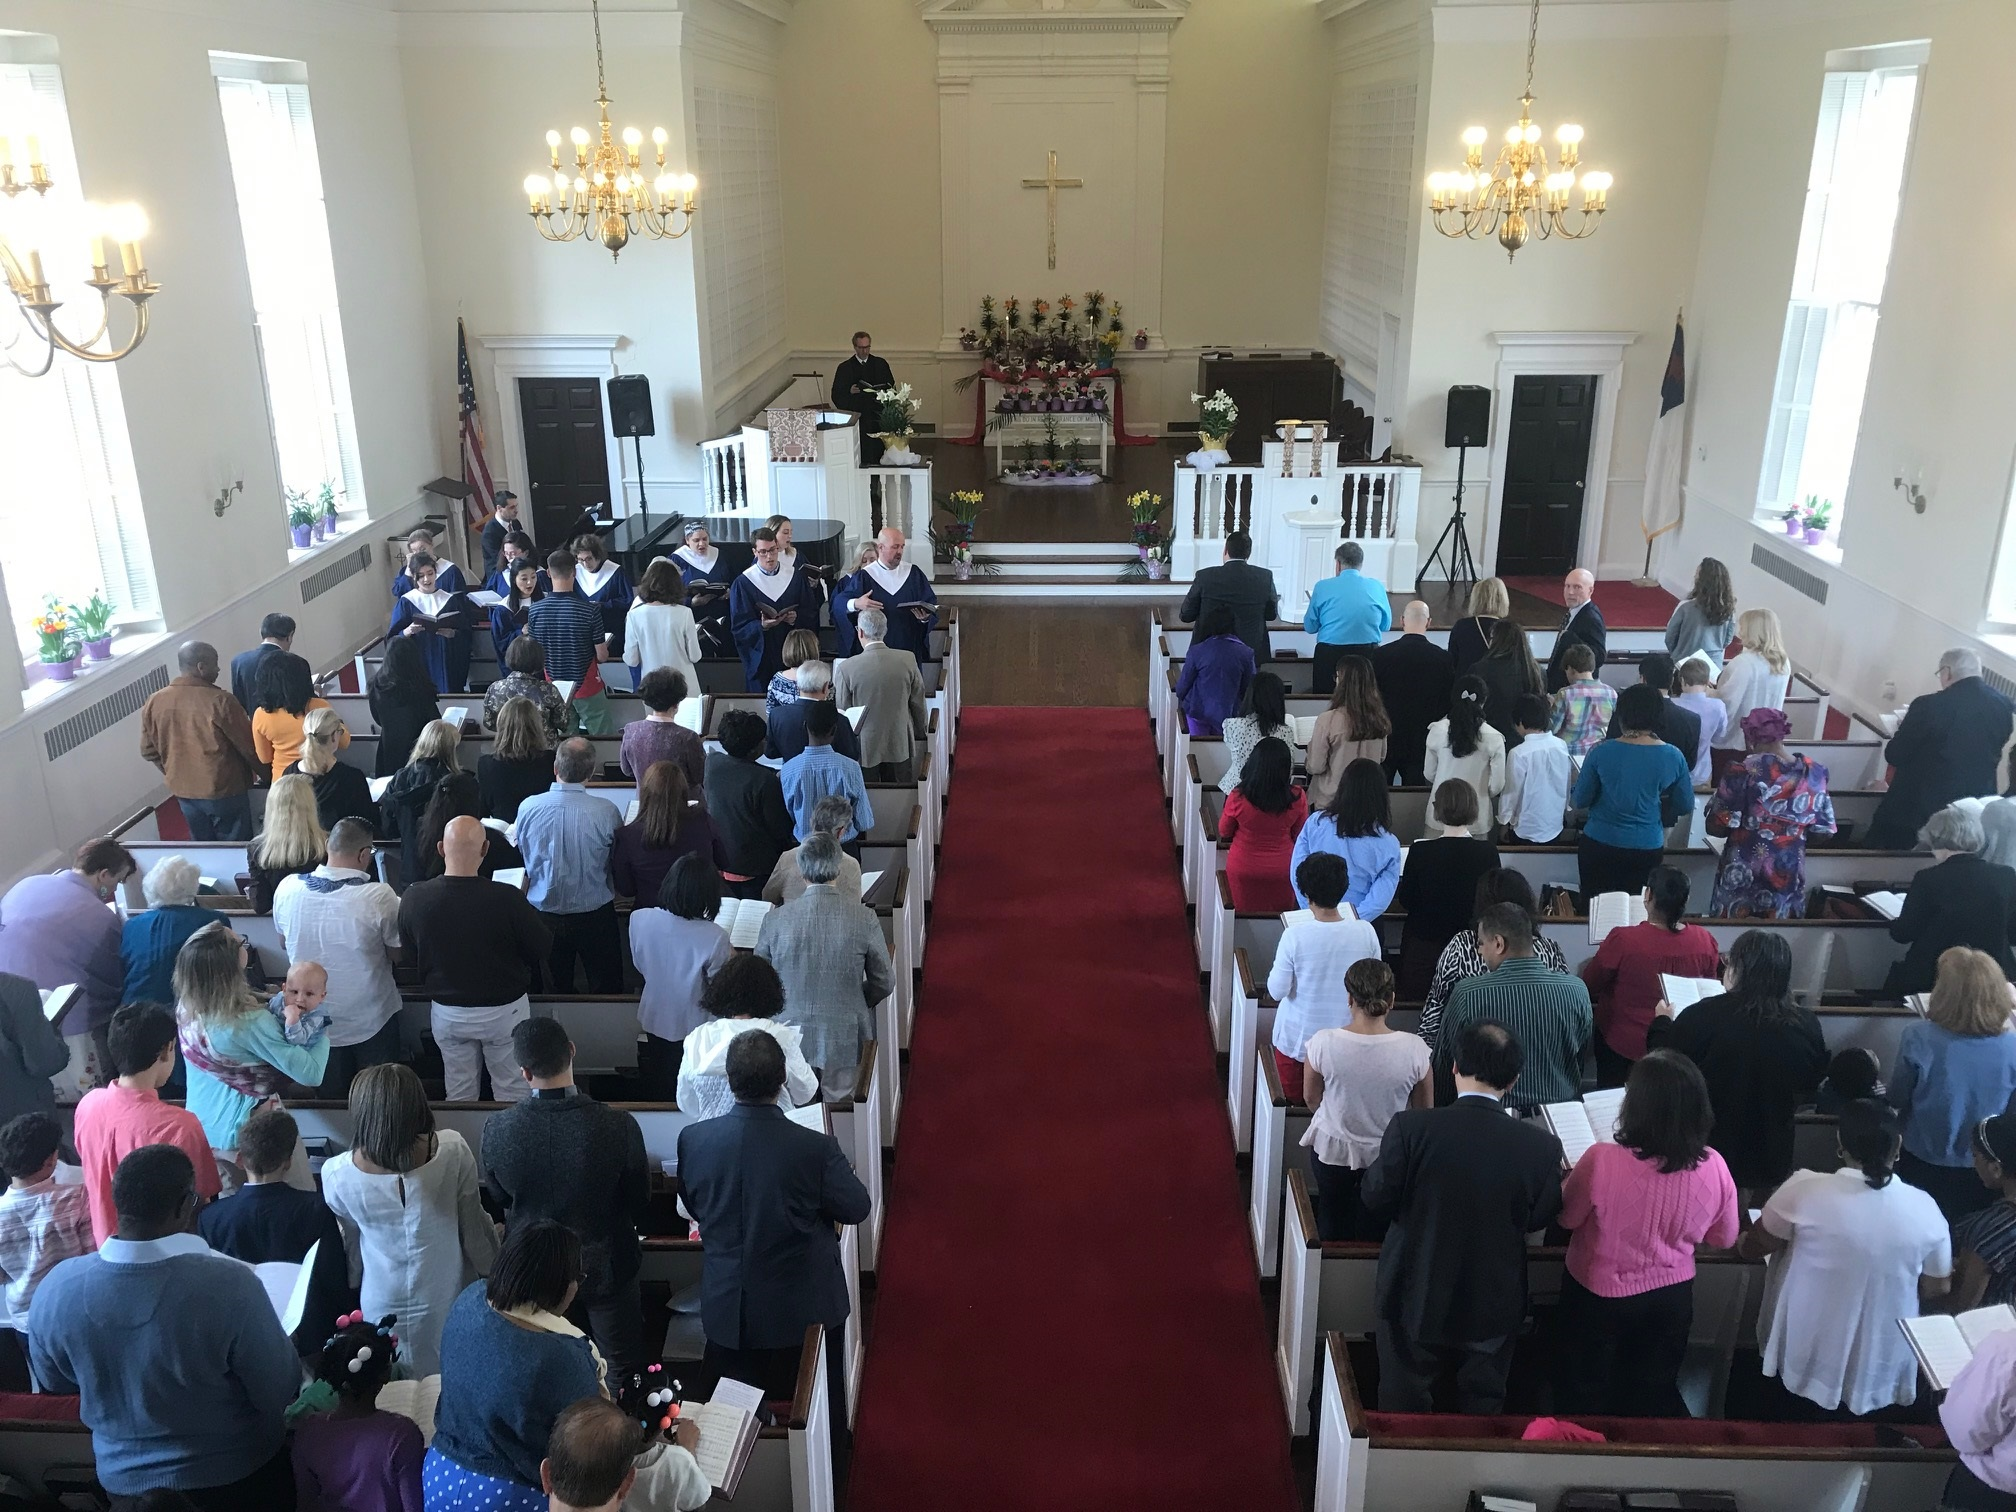 Sunday Worship in the Sanctuary